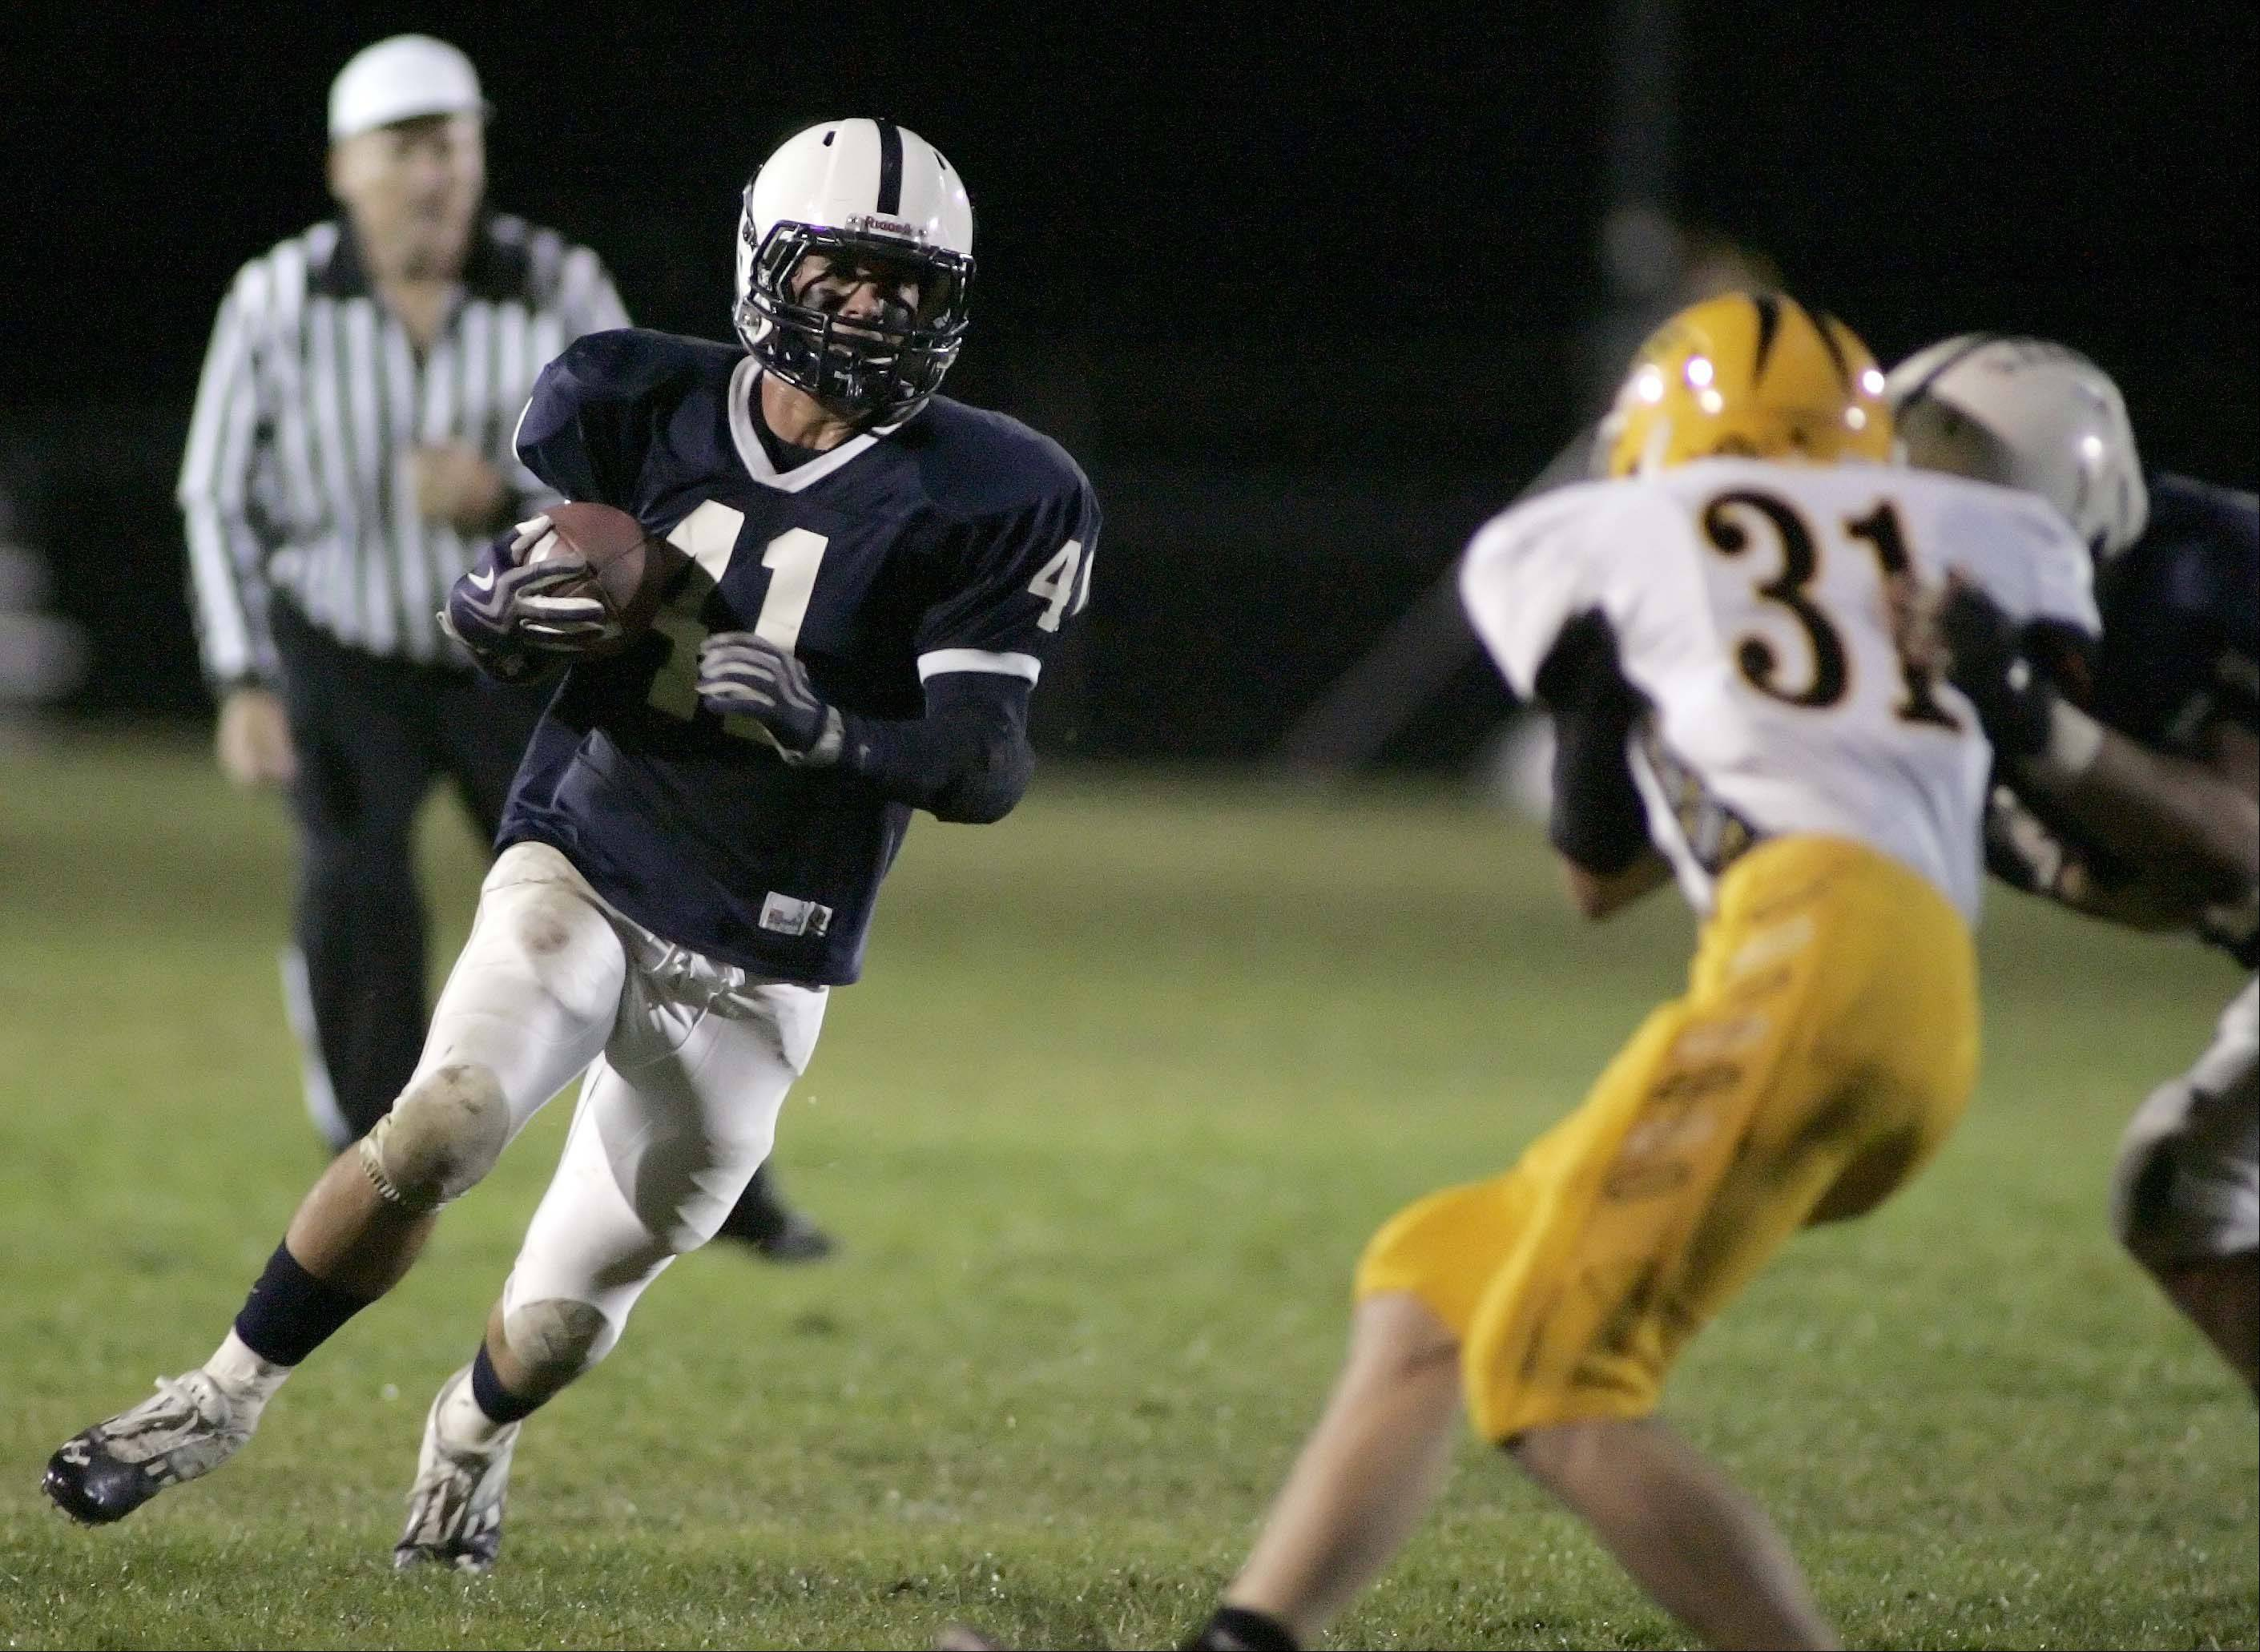 Cary-Grove's Zach Marszal (41) goes around the end for a touchdown in the second quarter against Jacobs on Friday in Cary.